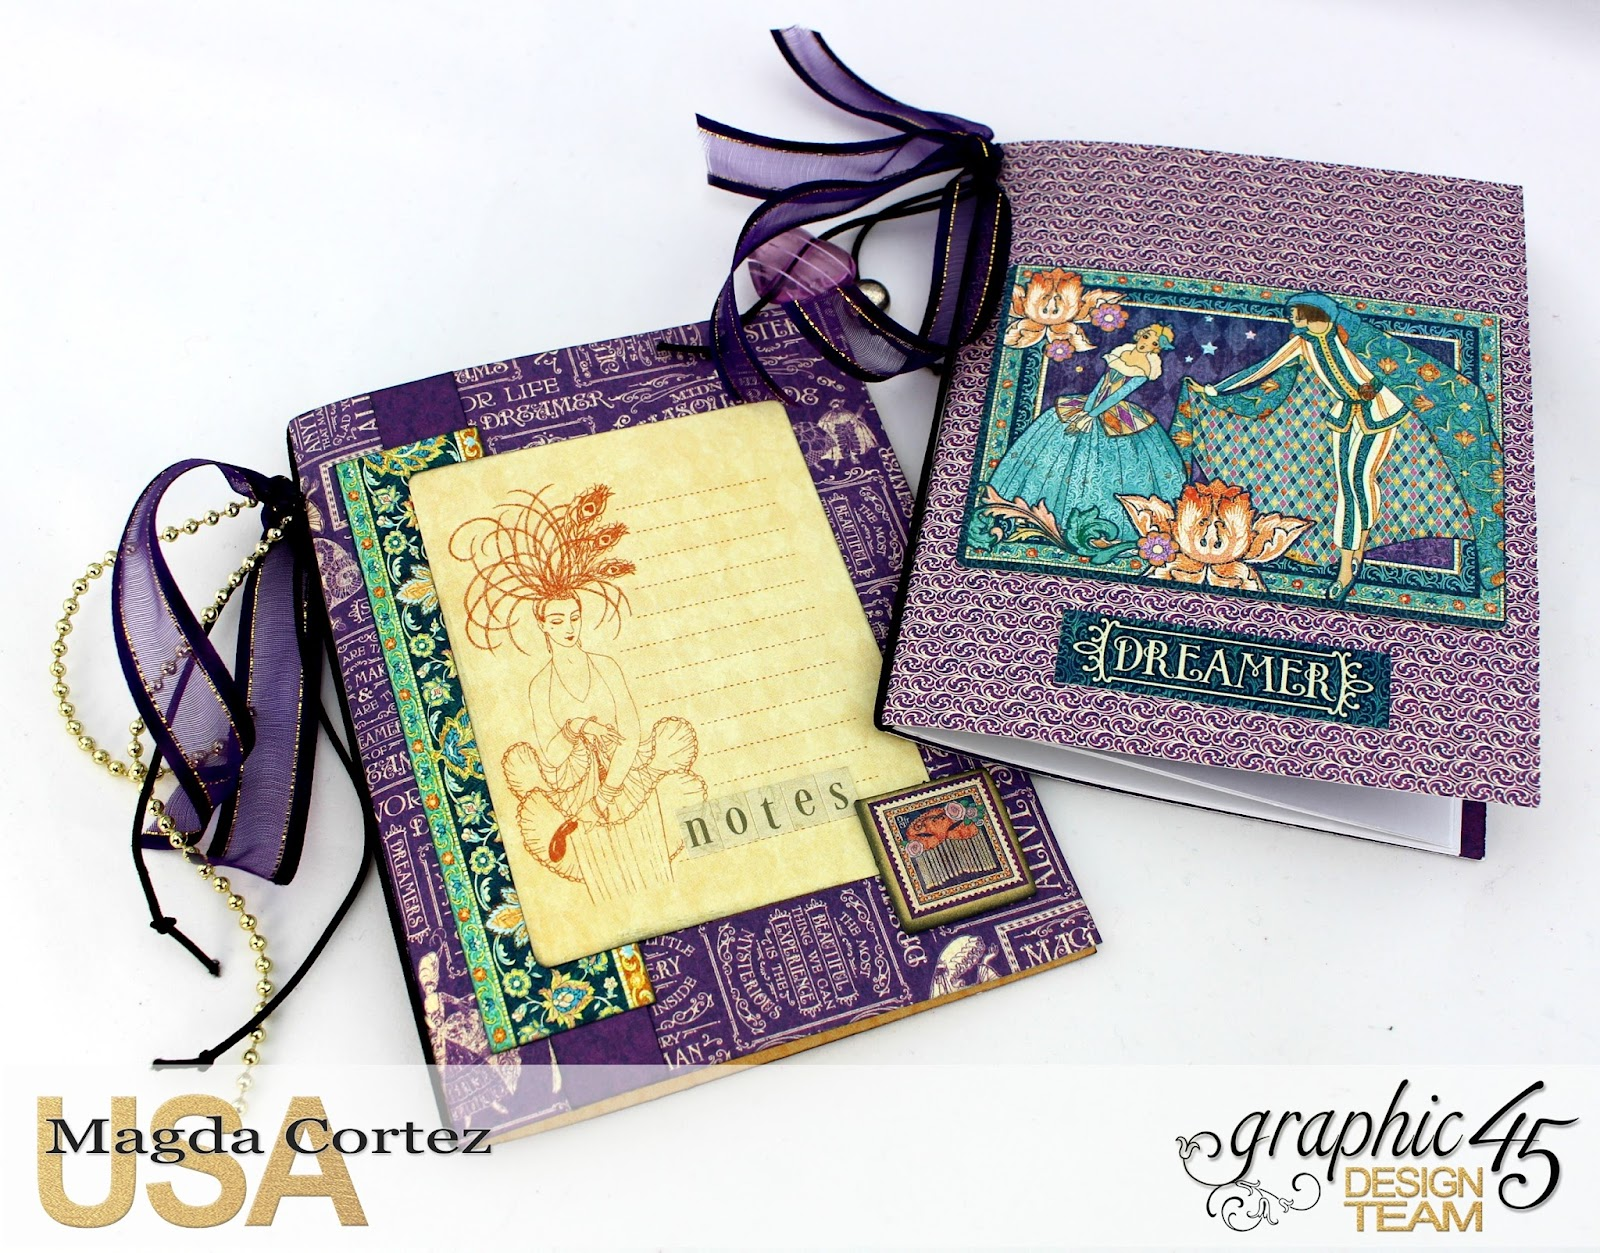 60 Second Tutorial Mini Notebooks, Midnight Masquerade, By Magda Cortez, Product by Graphic 45, Photo 06 of 07, with Tutorial.jpg